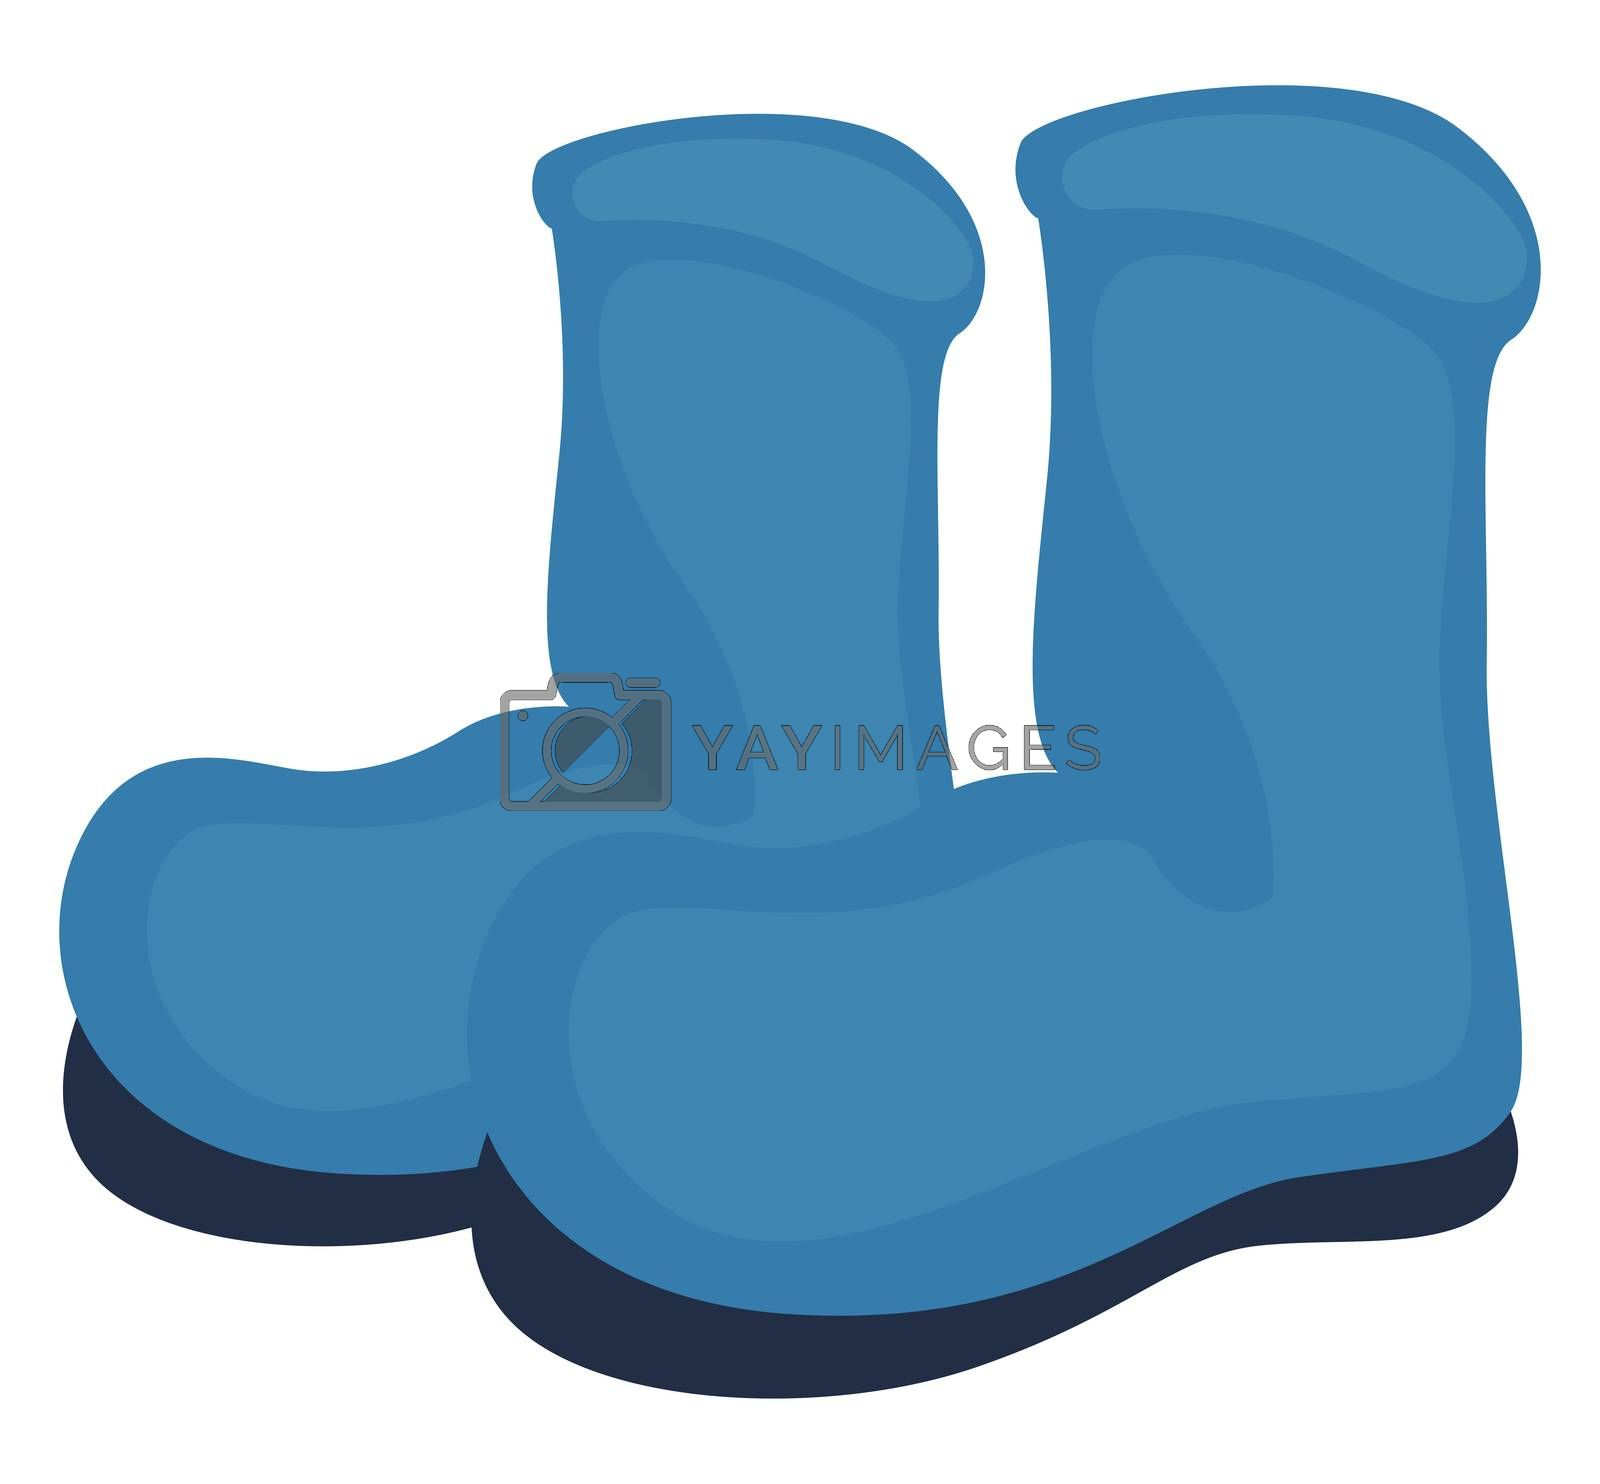 Blue winter boots, illustration, vector on white background